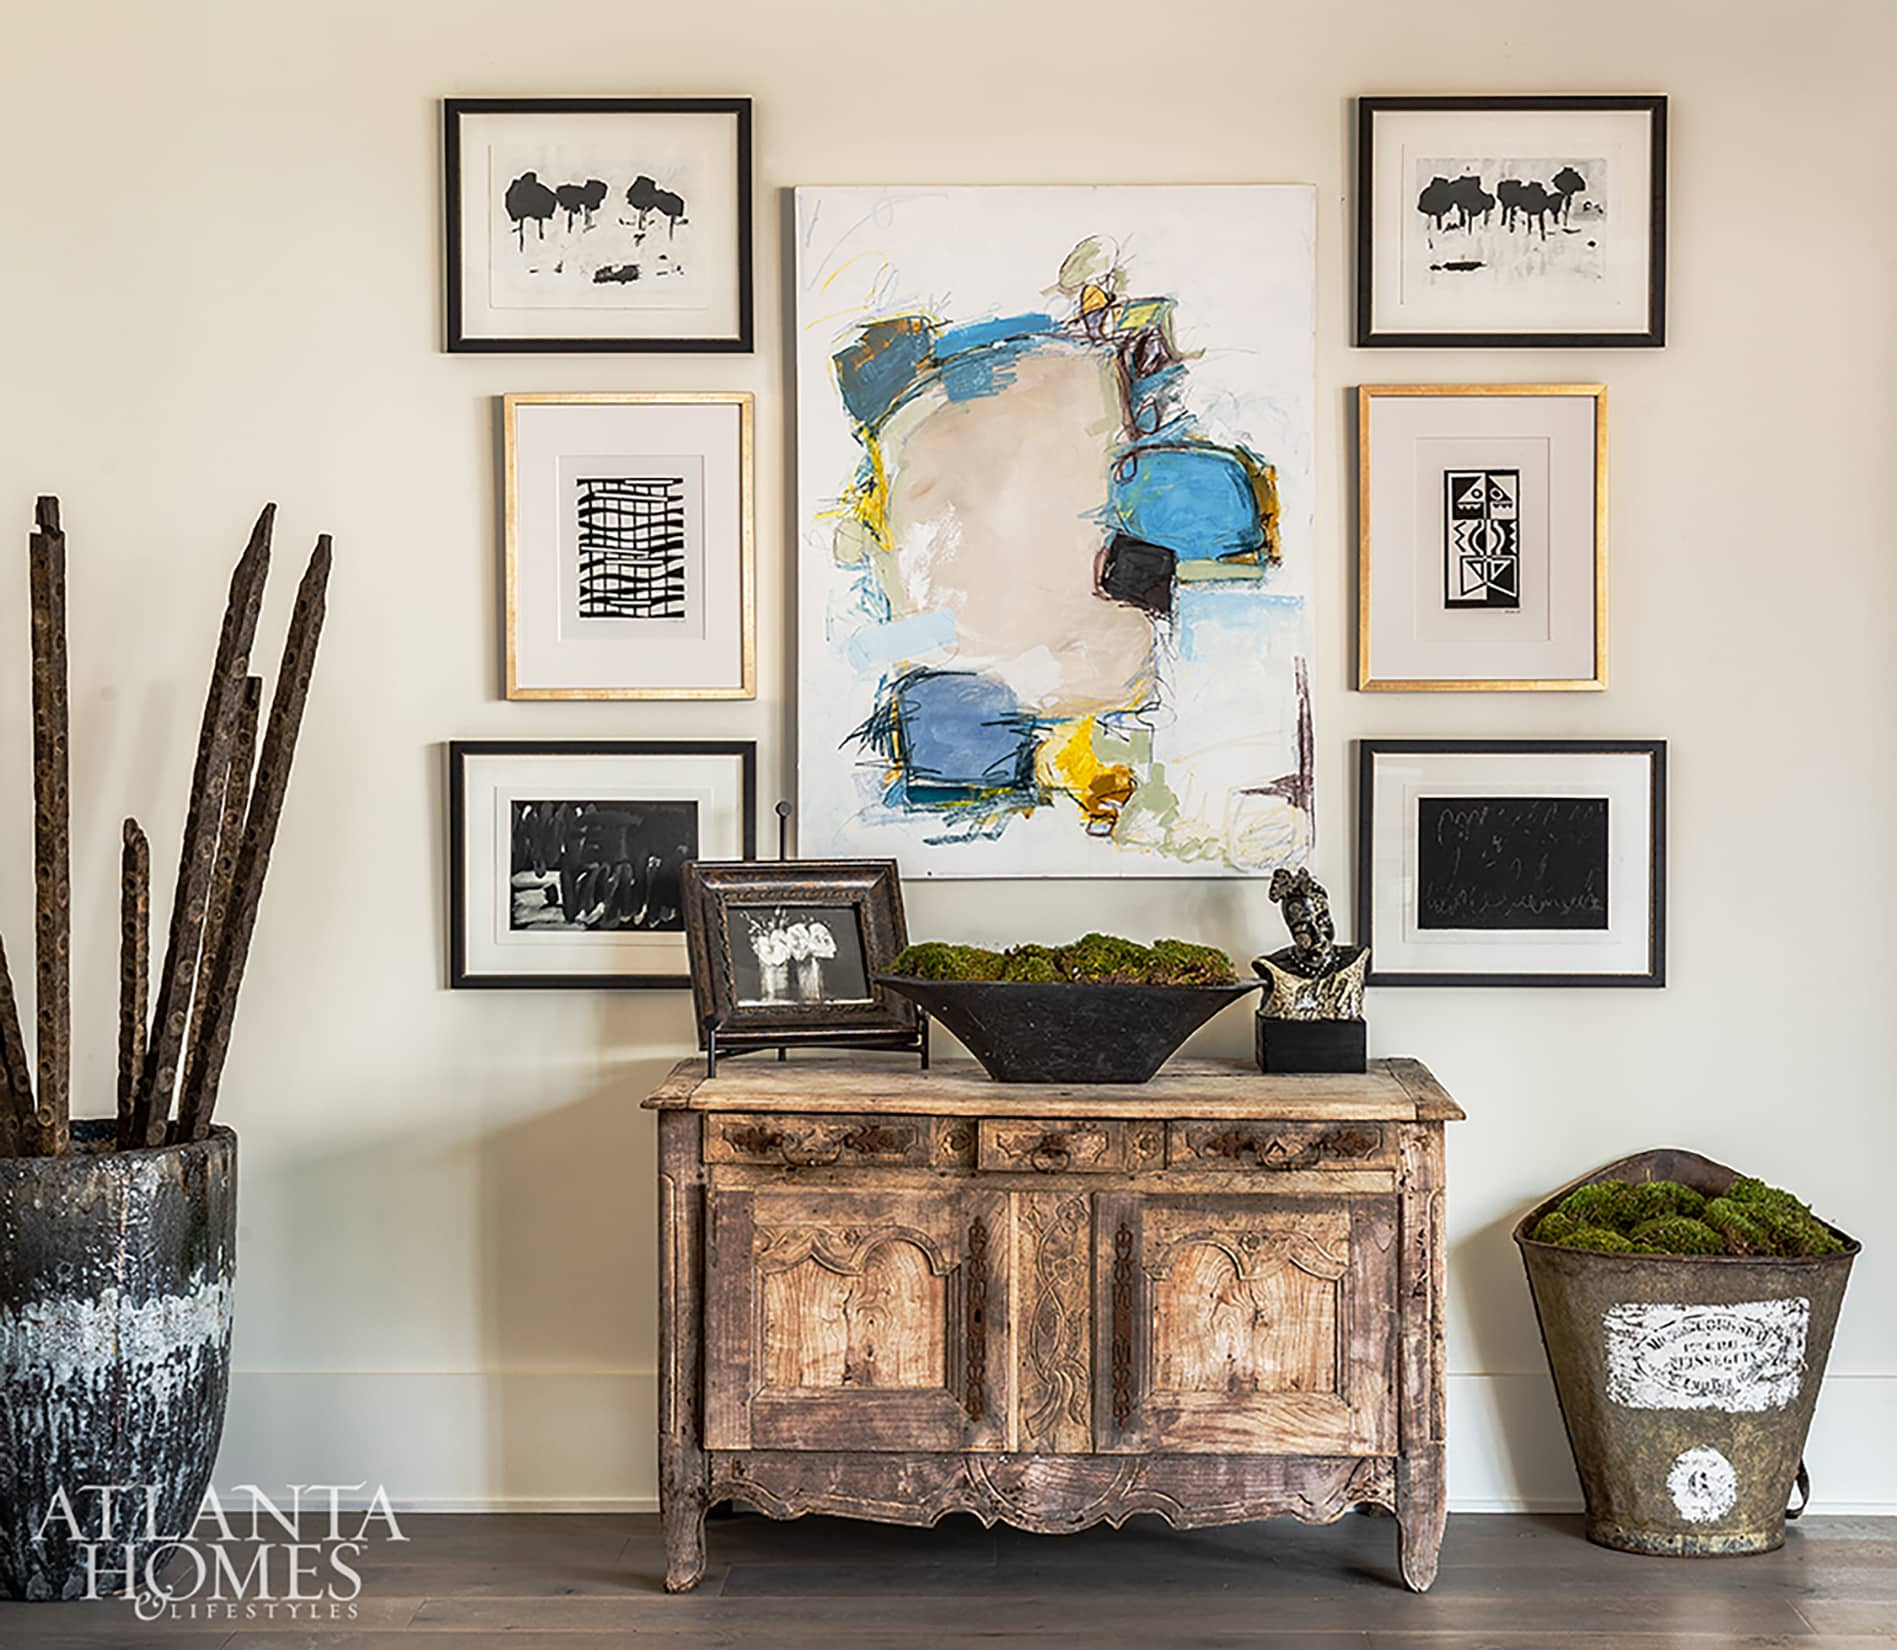 Atlanta Homes and Lifestlyles Serenne Showhouse Lorraine Enright Design on Cindy Hattersley's blog